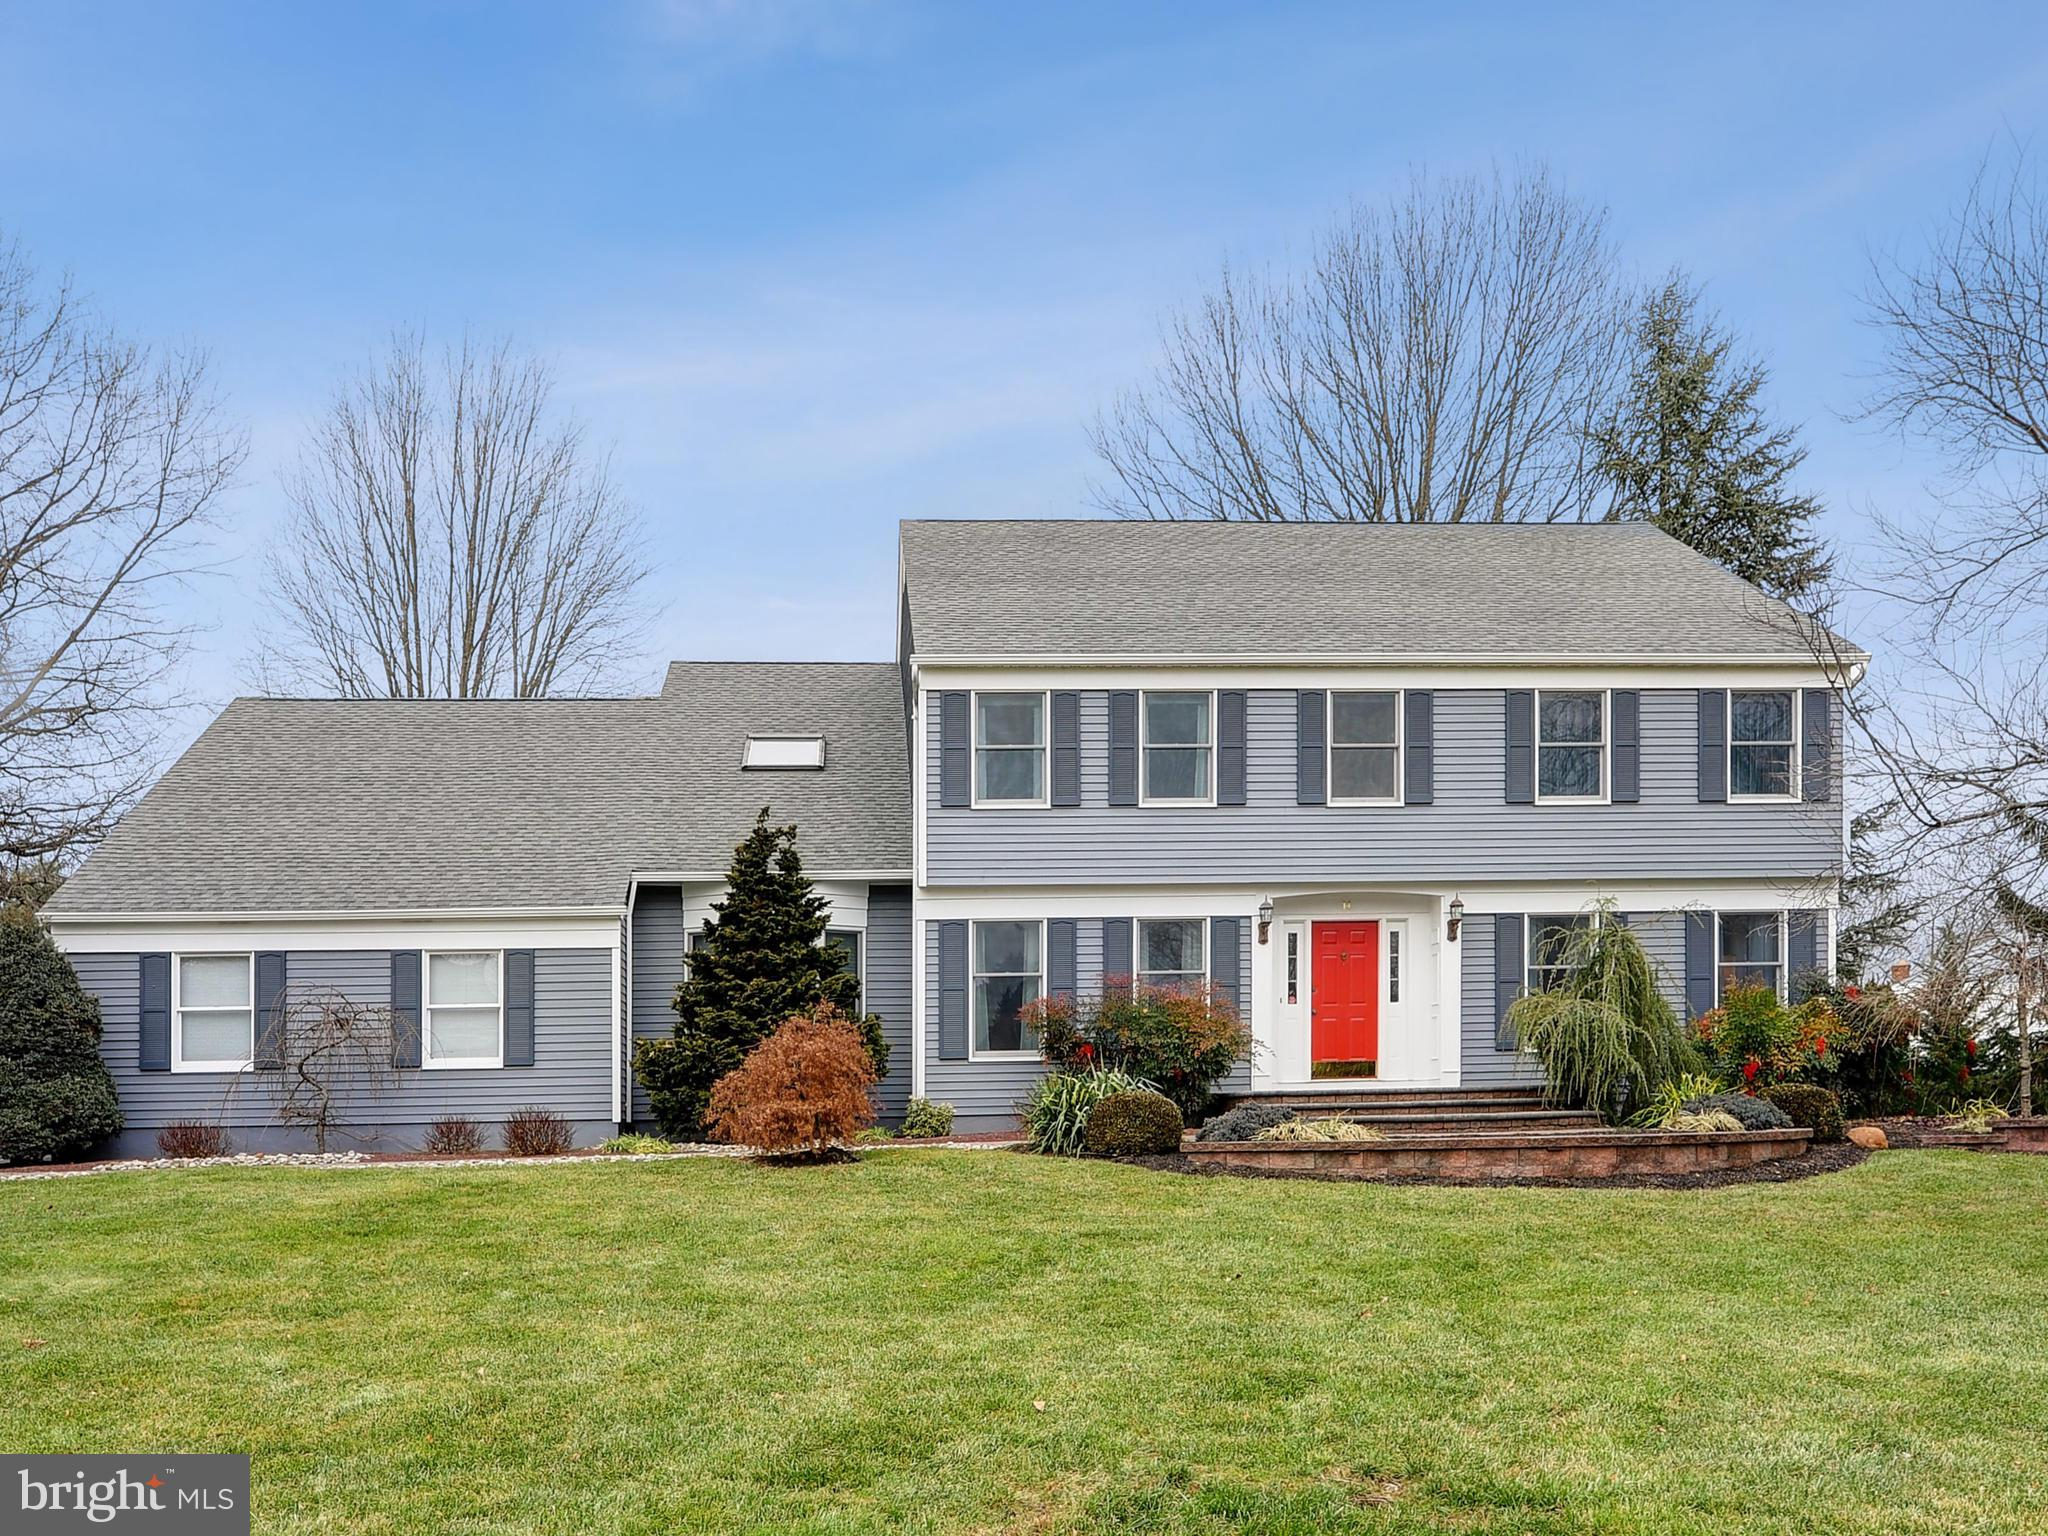 14 WESTMINSTER DRIVE, PRINCETON JUNCTION, NJ 08550